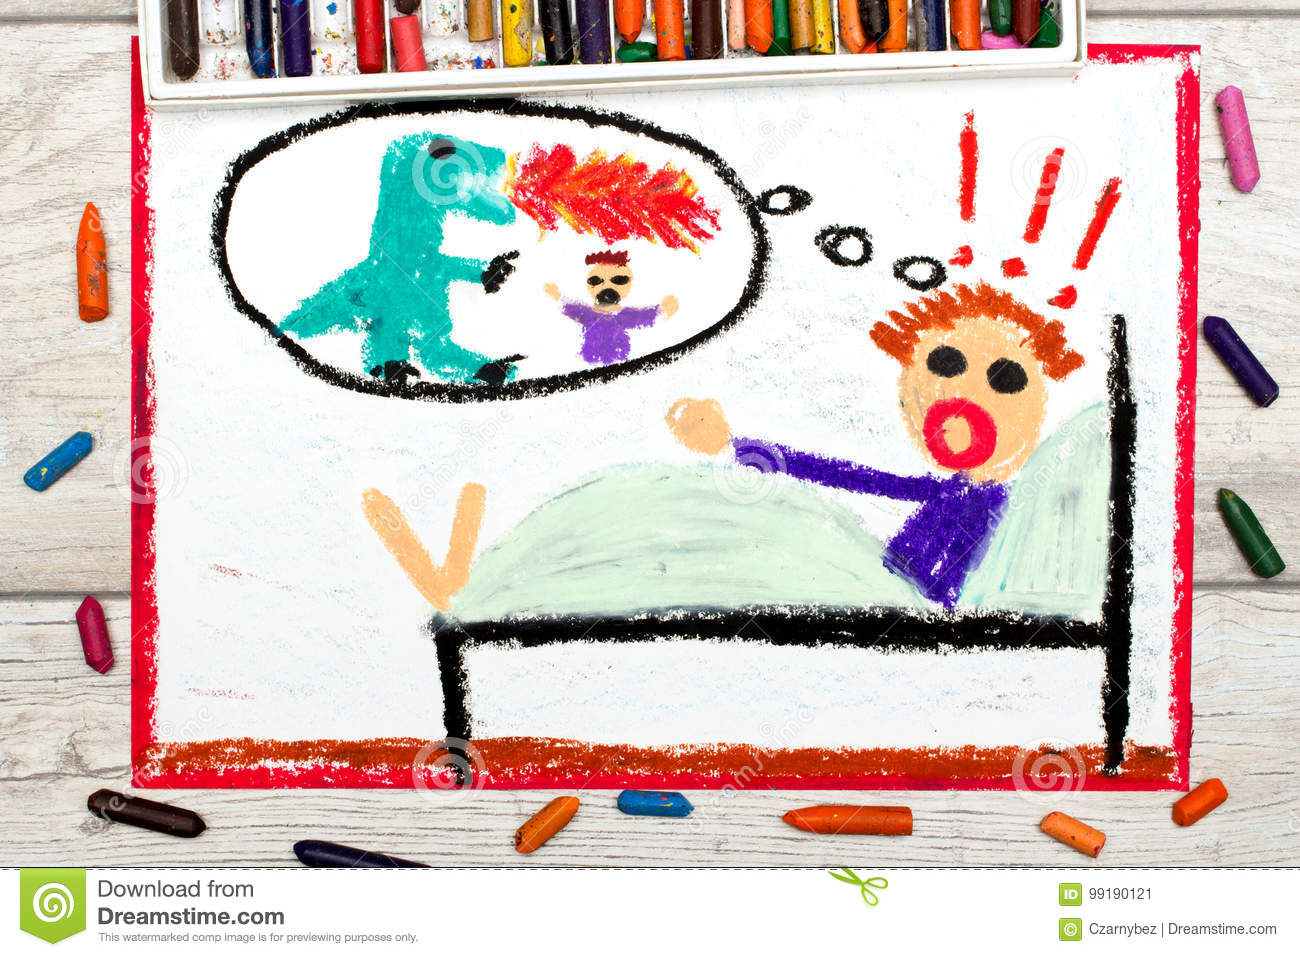 Drawing: little boy has nightmares. Scary nightmare creature